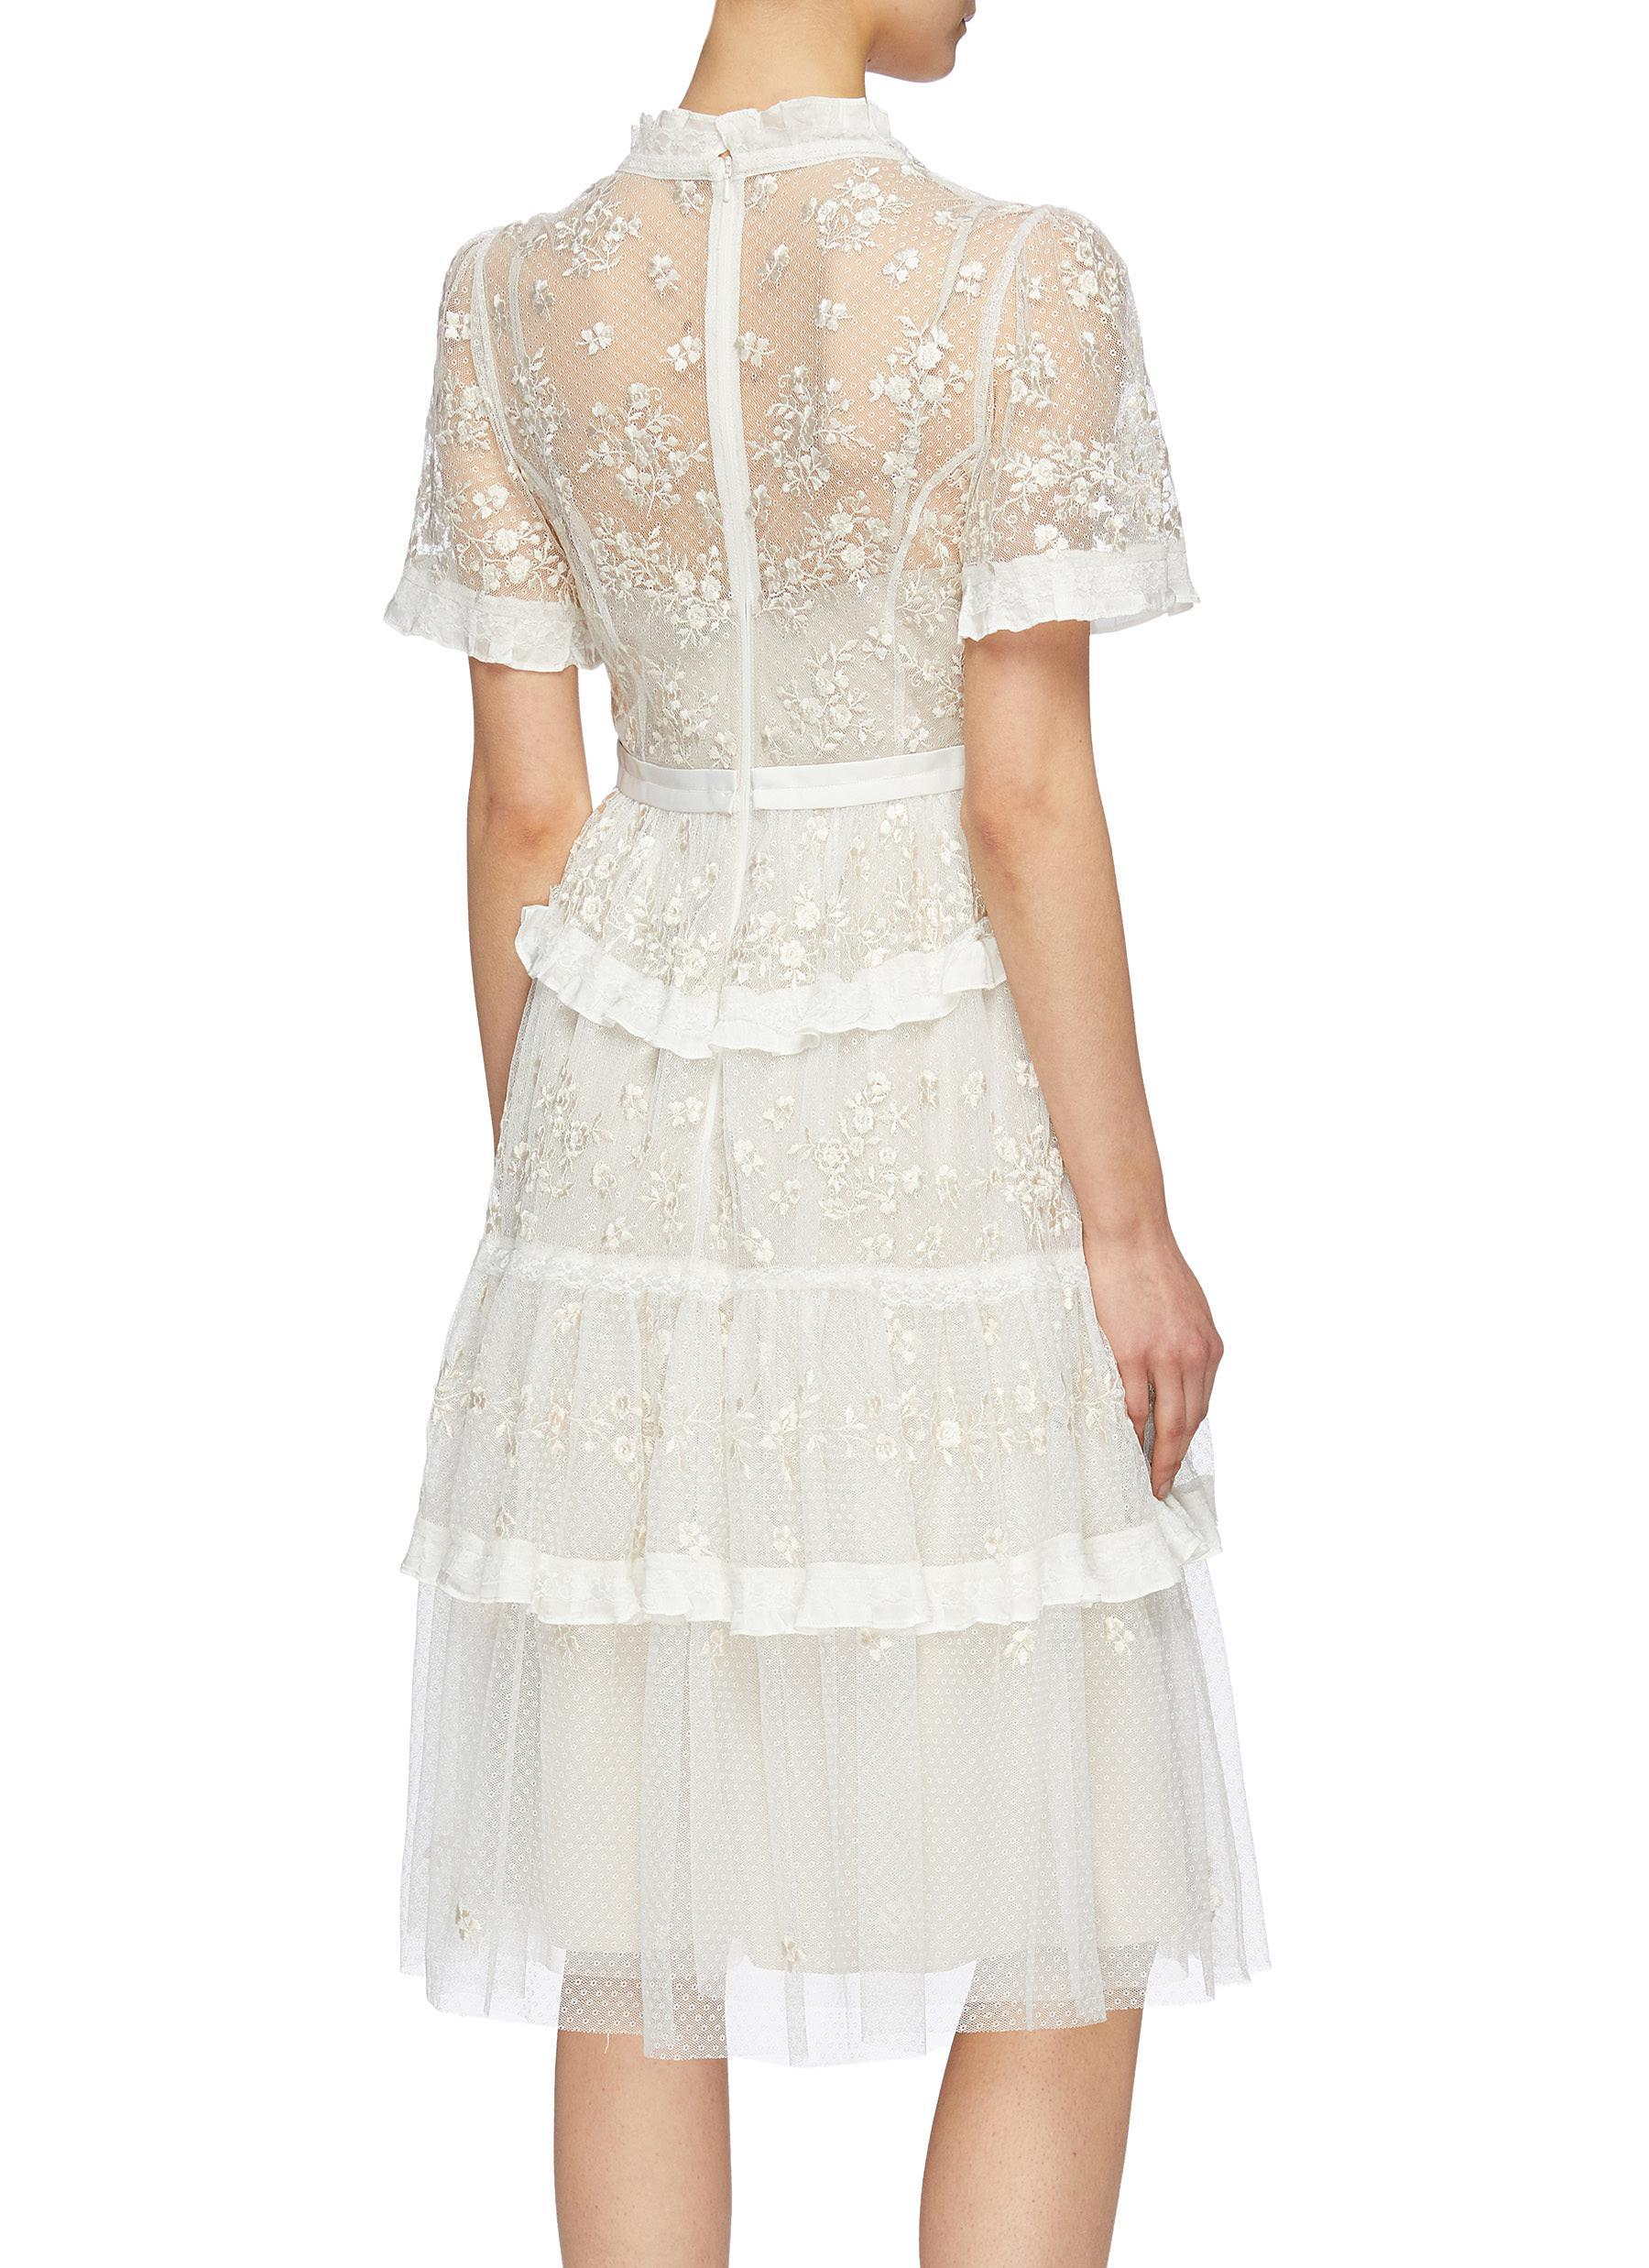 527d307c50e0 Needle   Thread - White  fortuny  Floral Embroidered Tiered Tulle Dress -  Lyst. View fullscreen